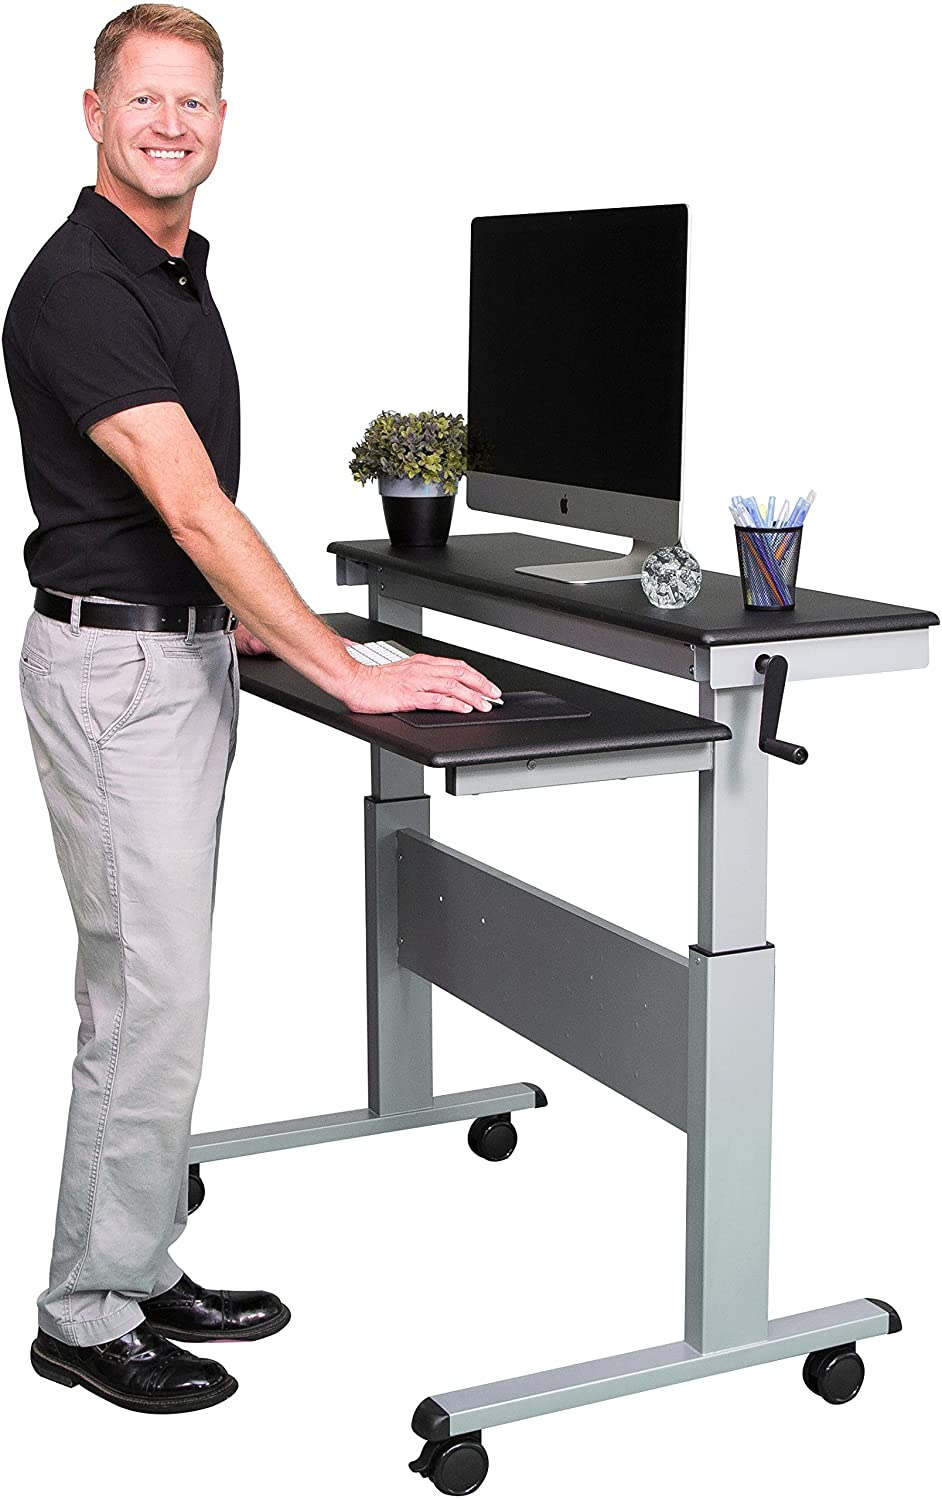 Amazon.com: Stand Up Desk Store 48 Inch Adjustable Desk with Steel ...